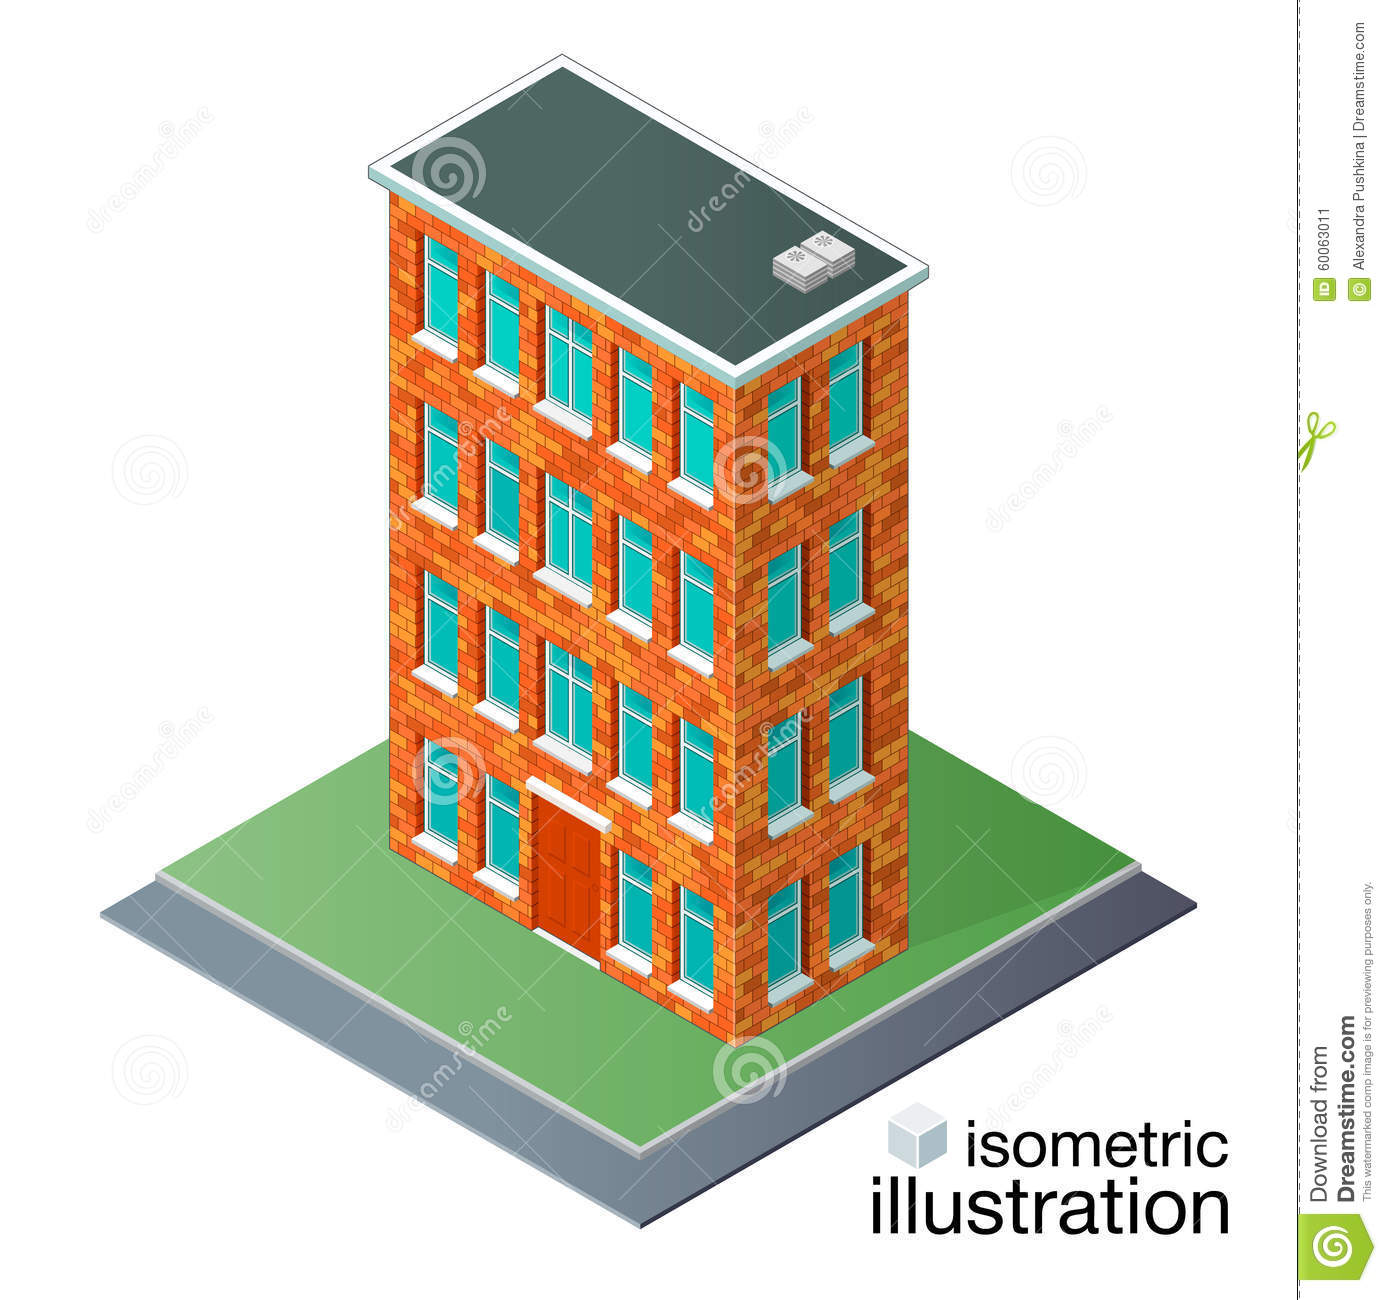 Brick Vector Picture Brick Veneers: Detailed Brick Building In The Isometric Projection. Stock